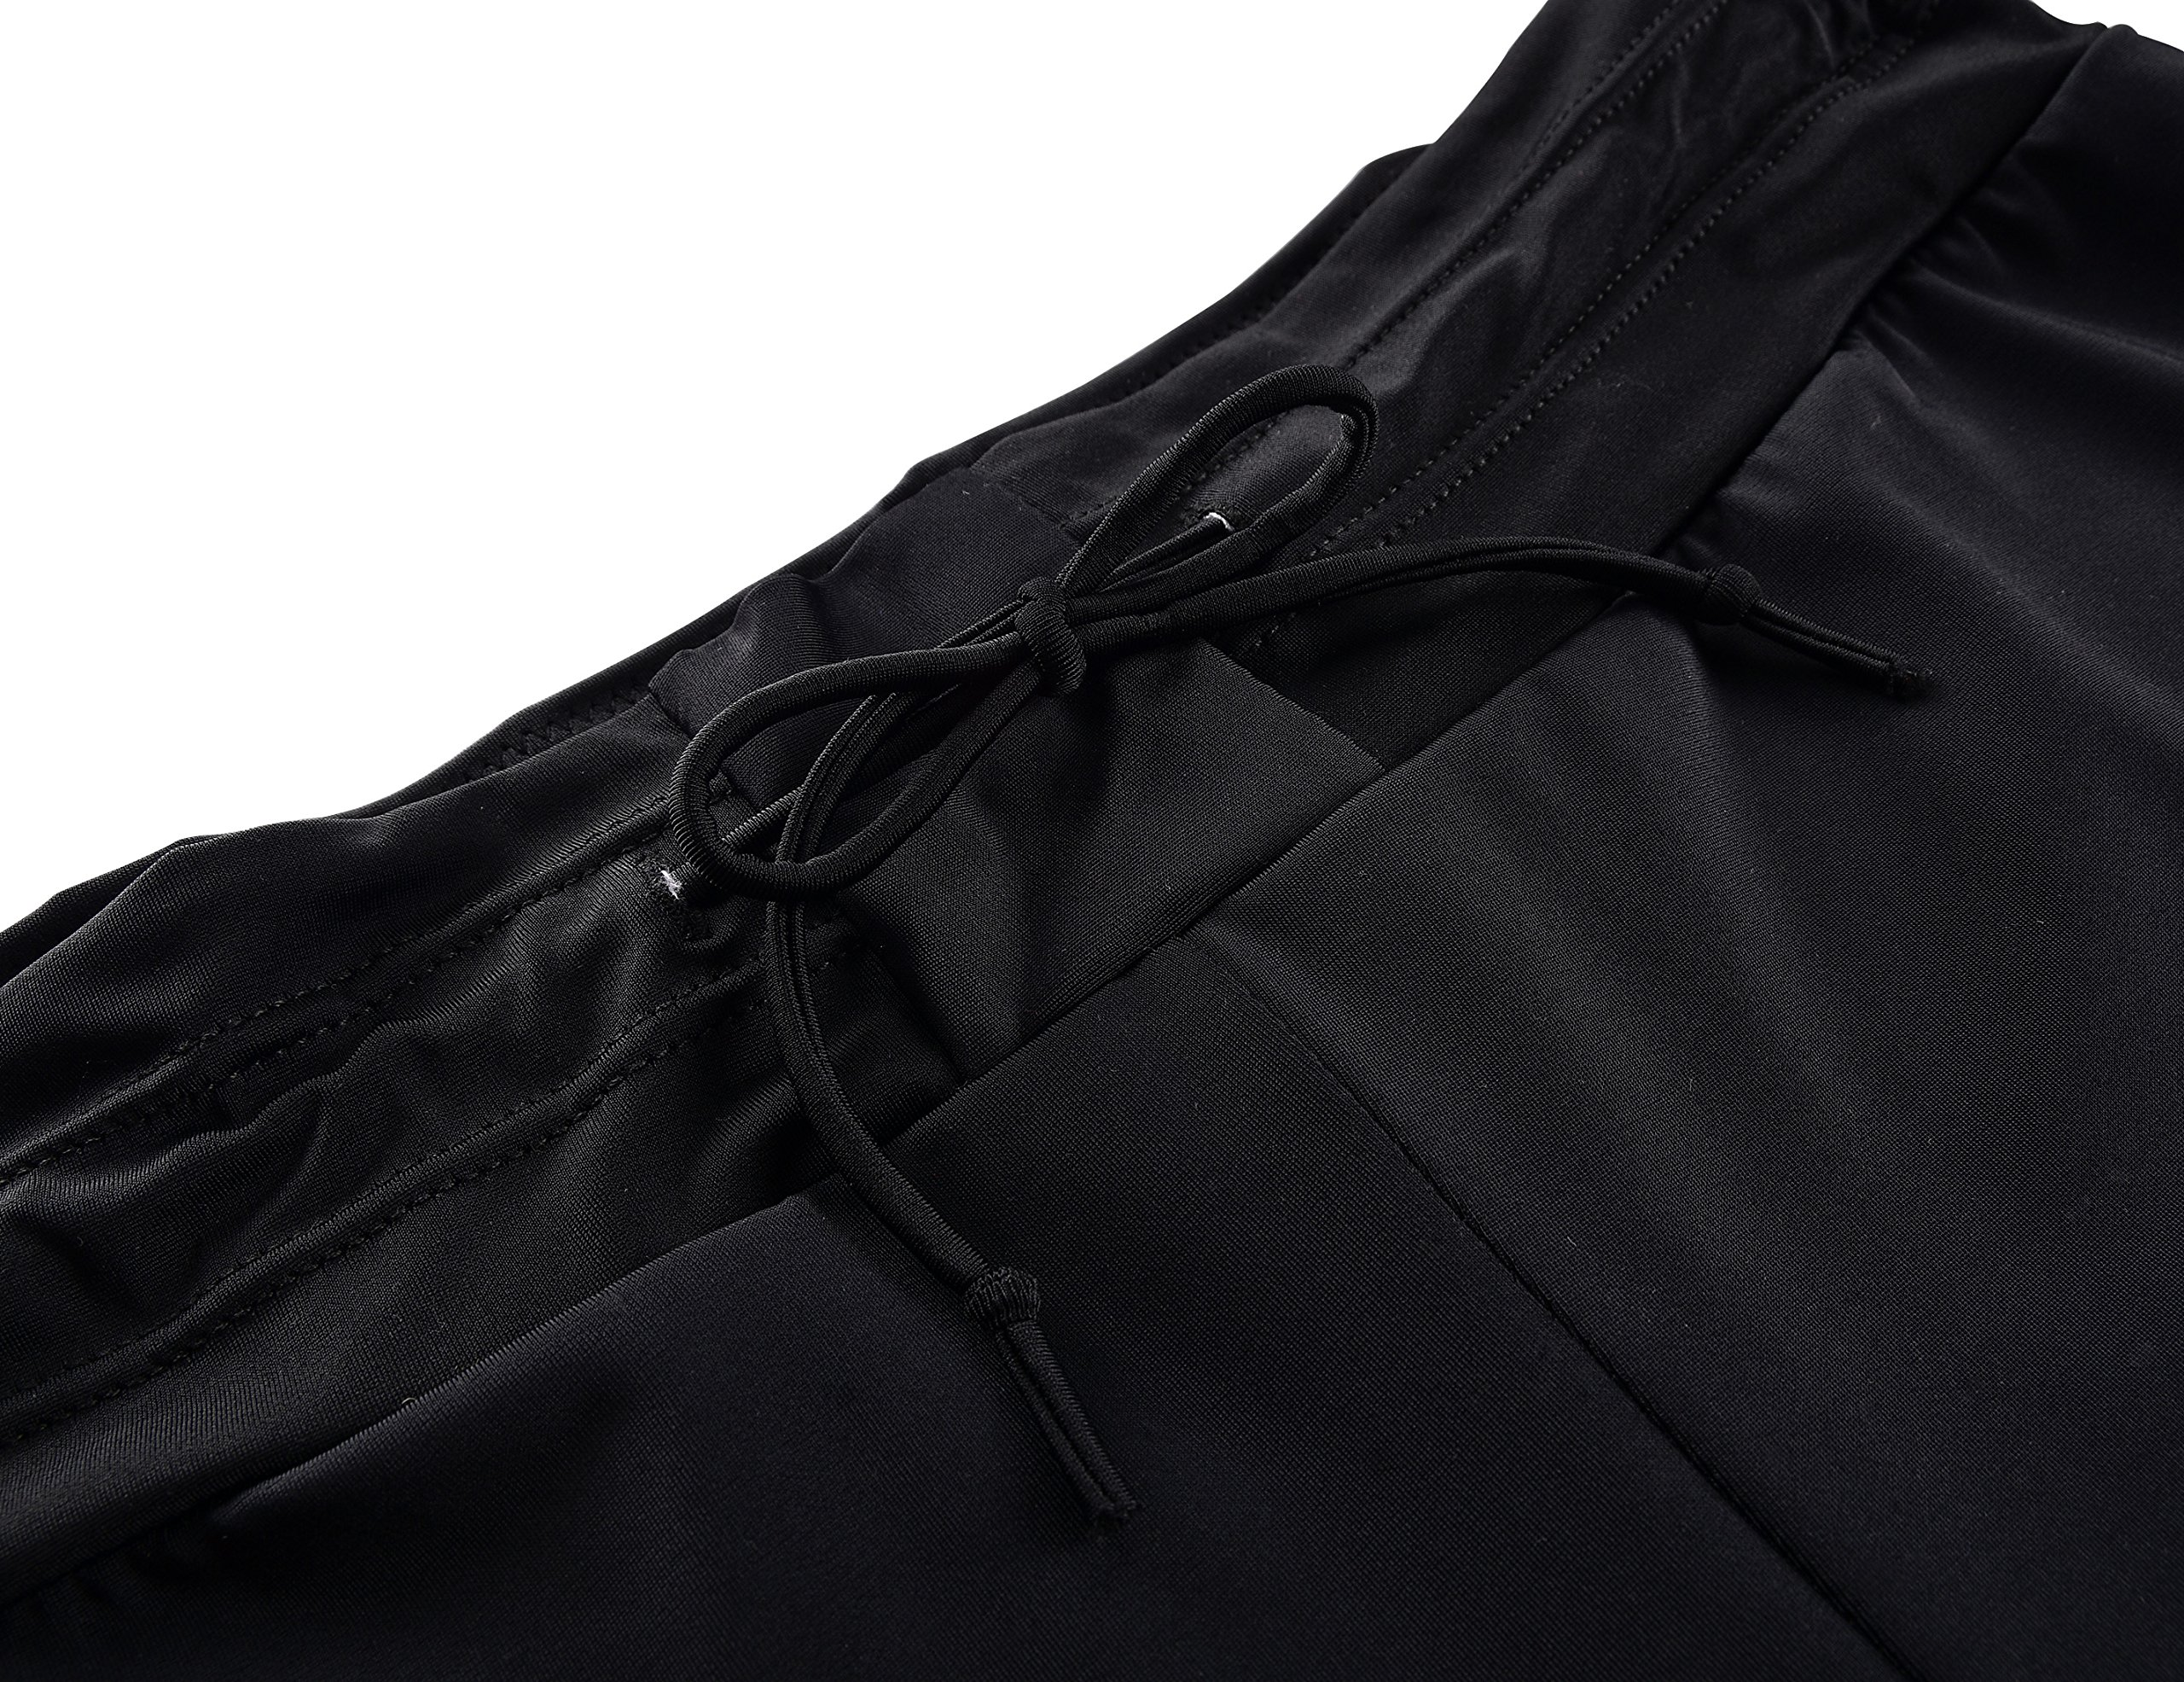 Septangle Womens Black Swim Sports Board Shorts Bottom with Side Ties,US 14 by Septangle (Image #5)